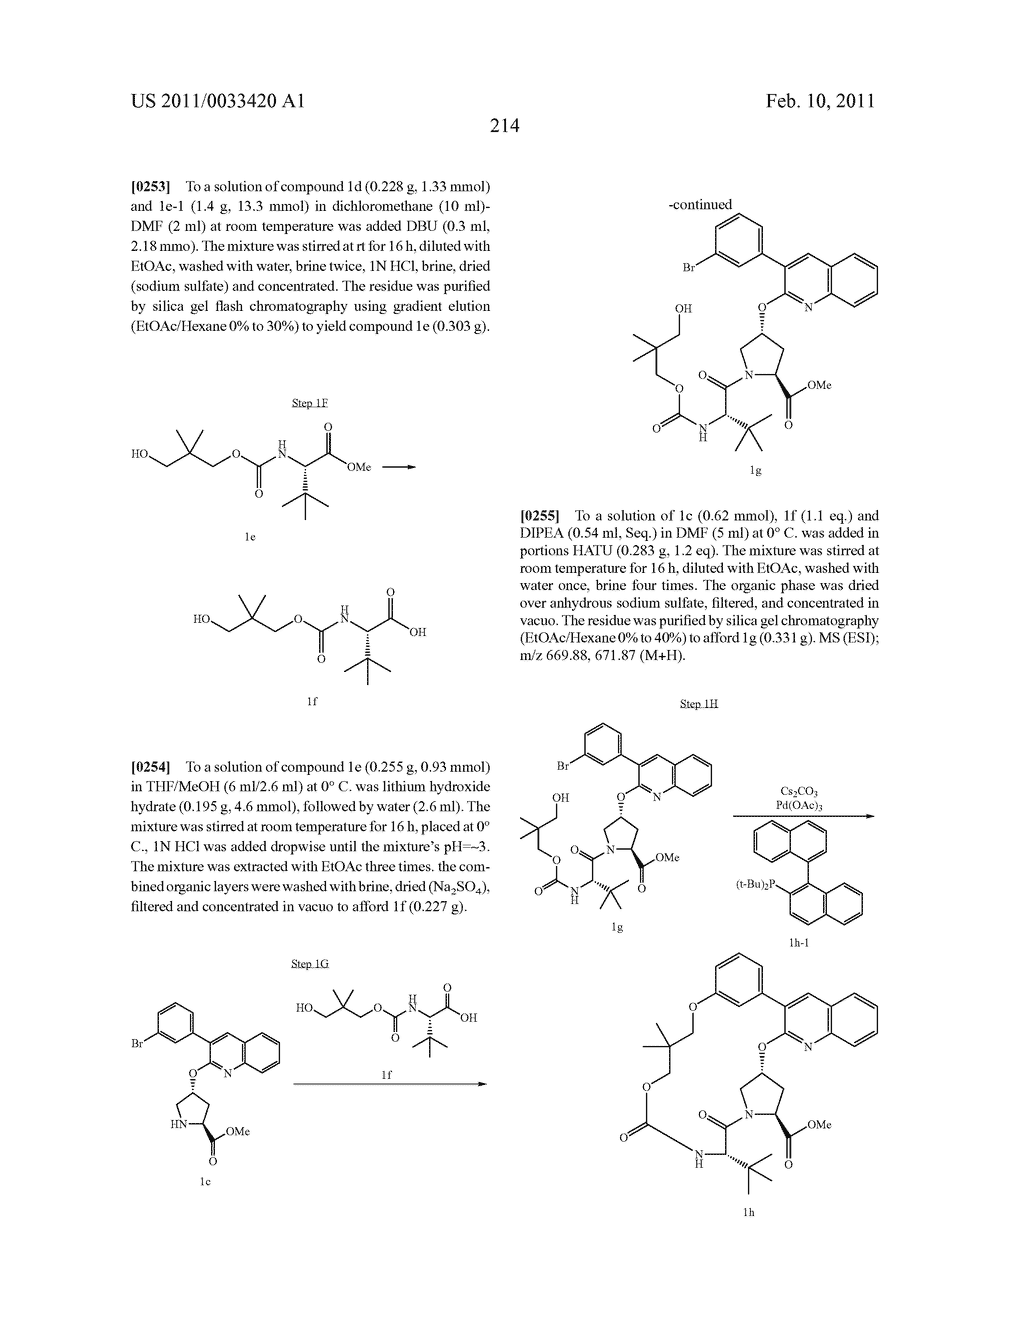 MACROCYCLIC COMPOUNDS AS HEPATITIS C VIRUS INHIBITORS - diagram, schematic, and image 215